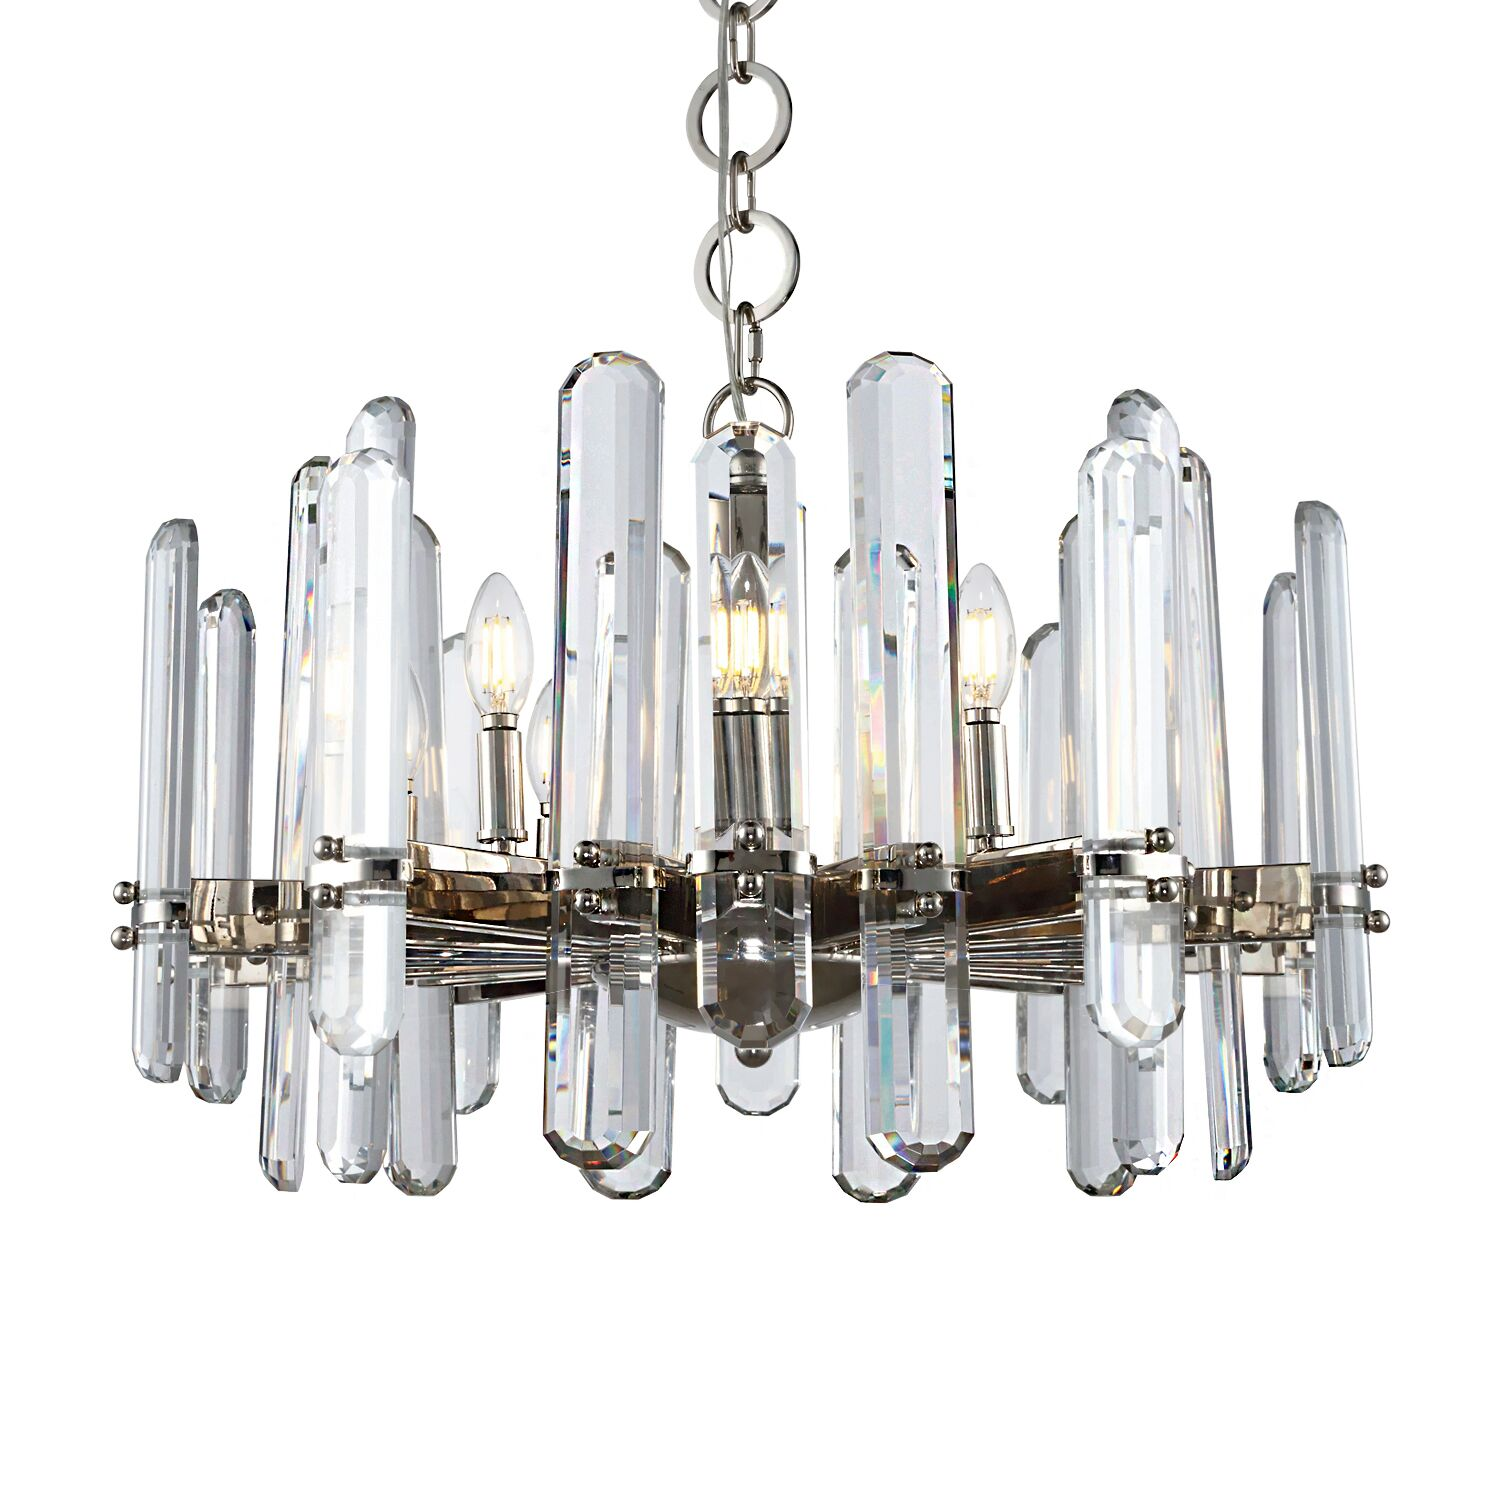 Gent 10-Light Chandelier Finish: Polished Nickel